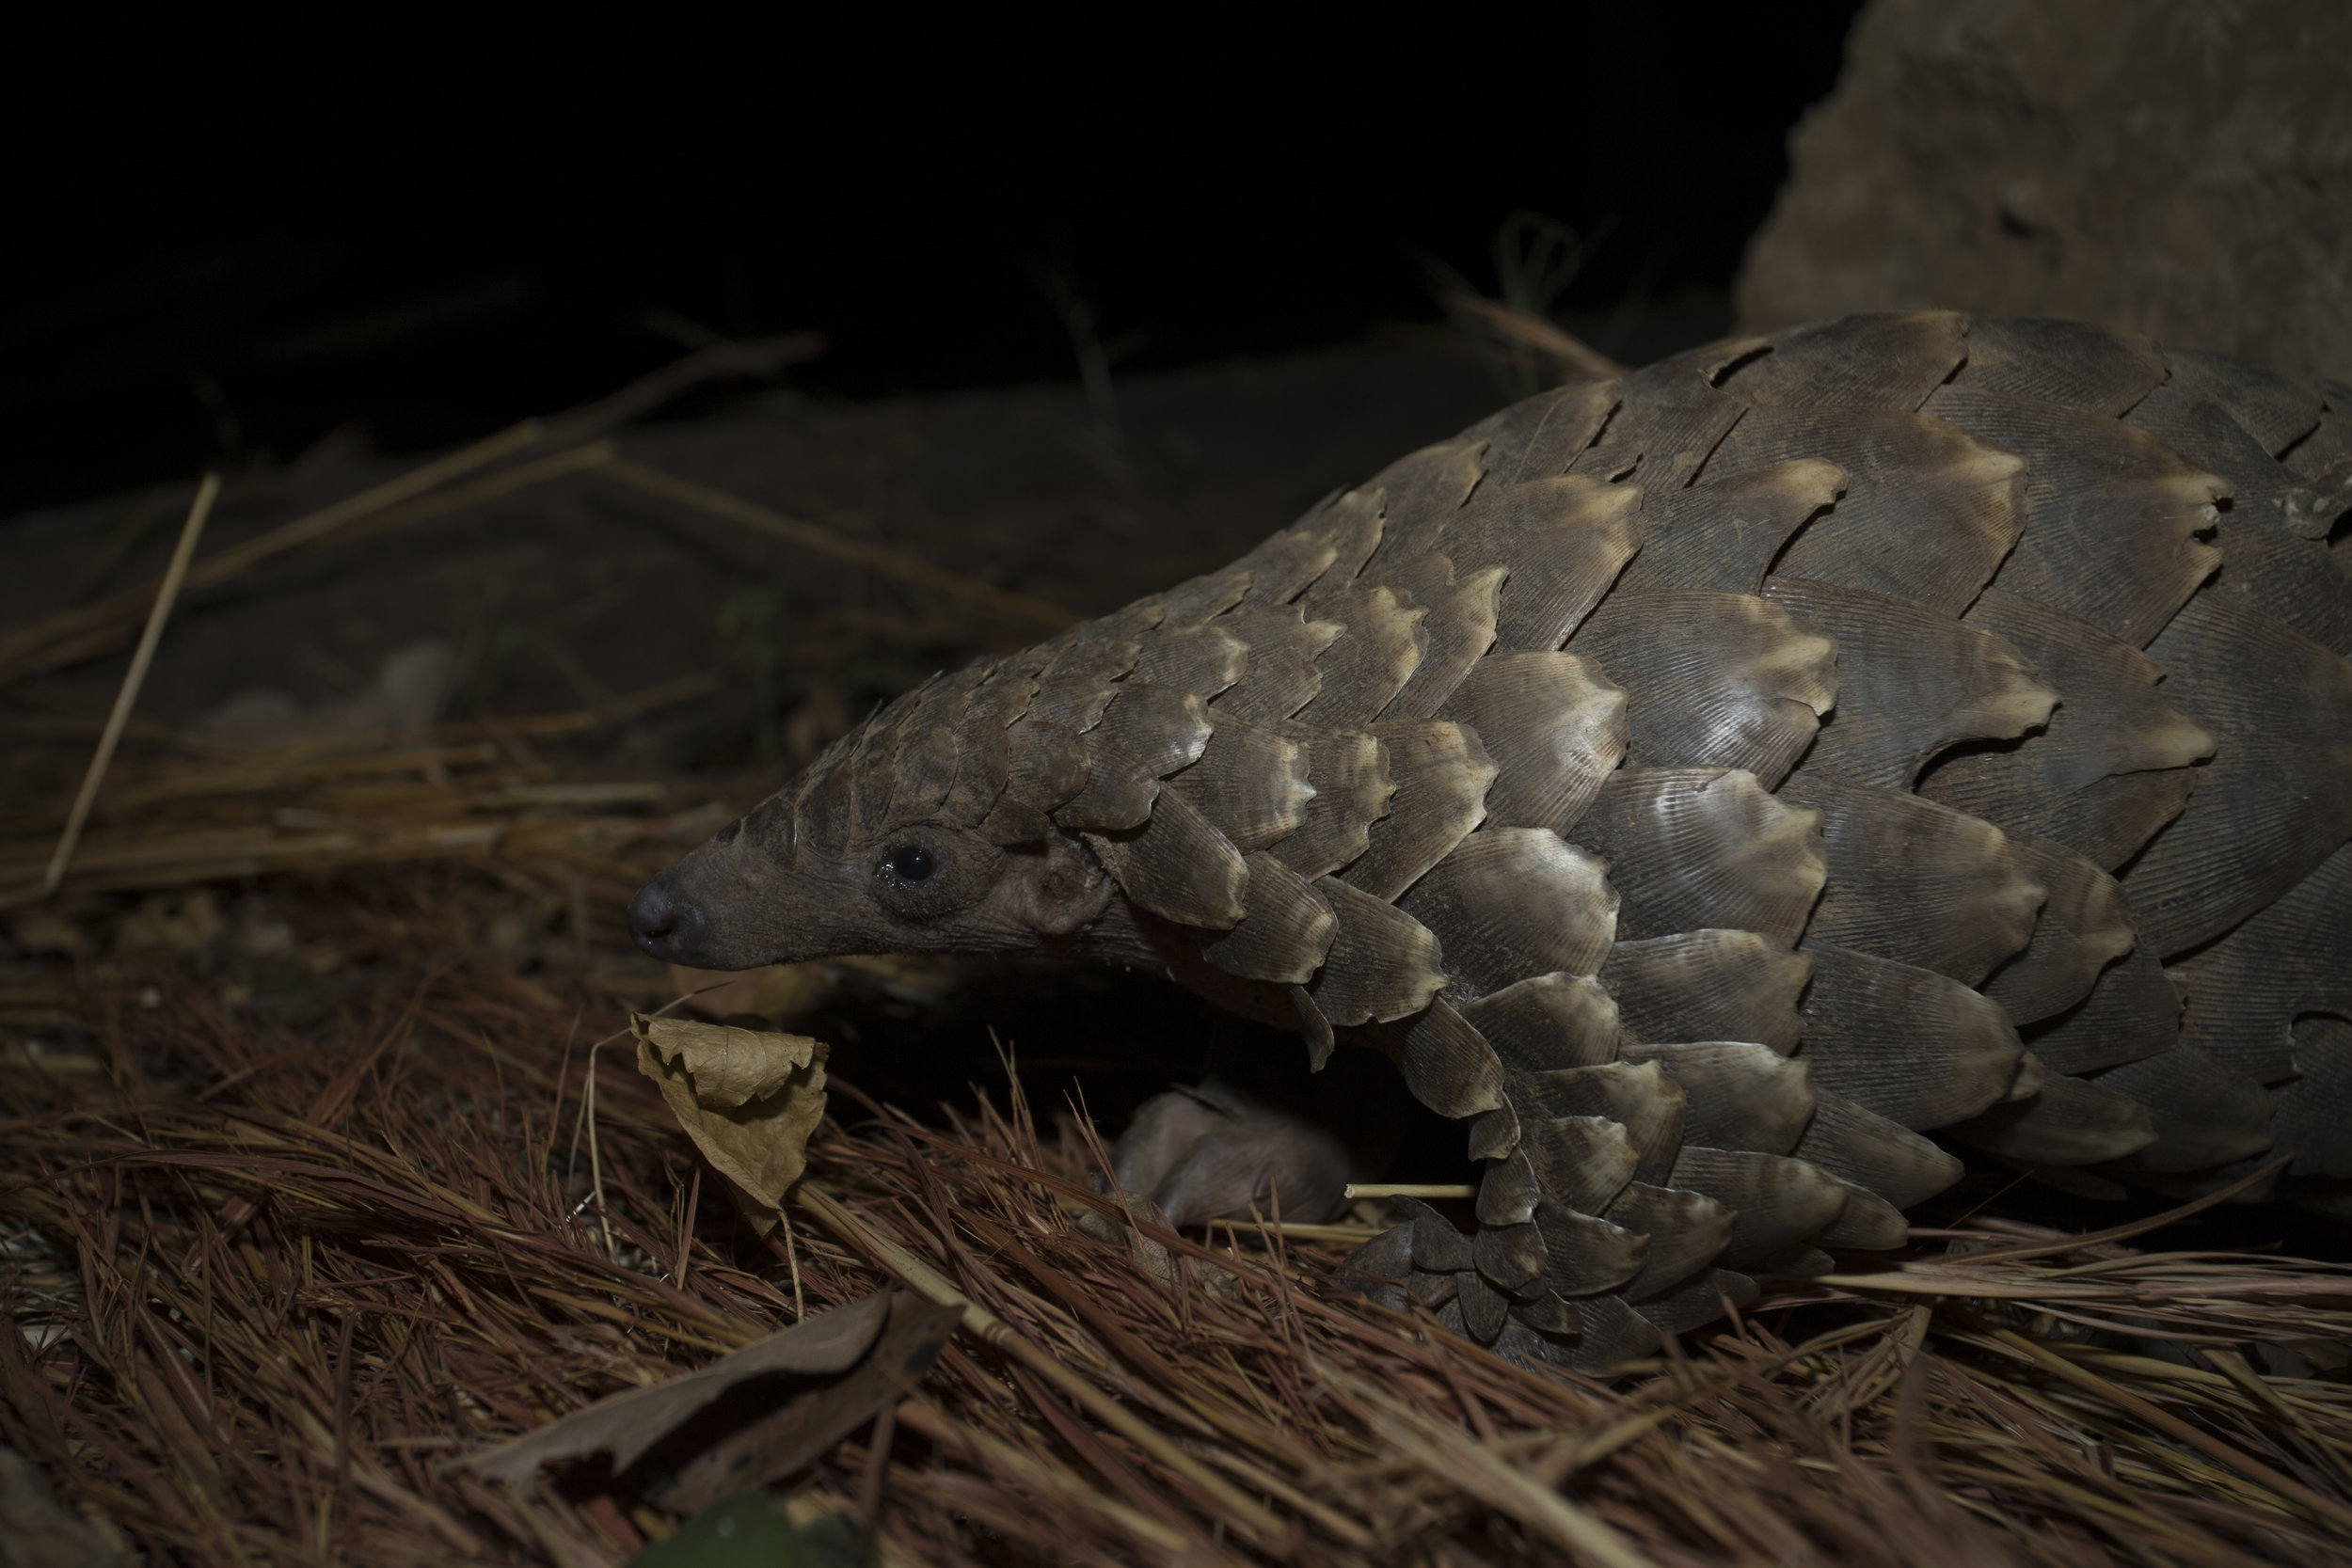 African ground pangolins and solitary and nocturnal - here's one at night, on the move.  Photo Credit: Luke Massey/WildScreen Exchange